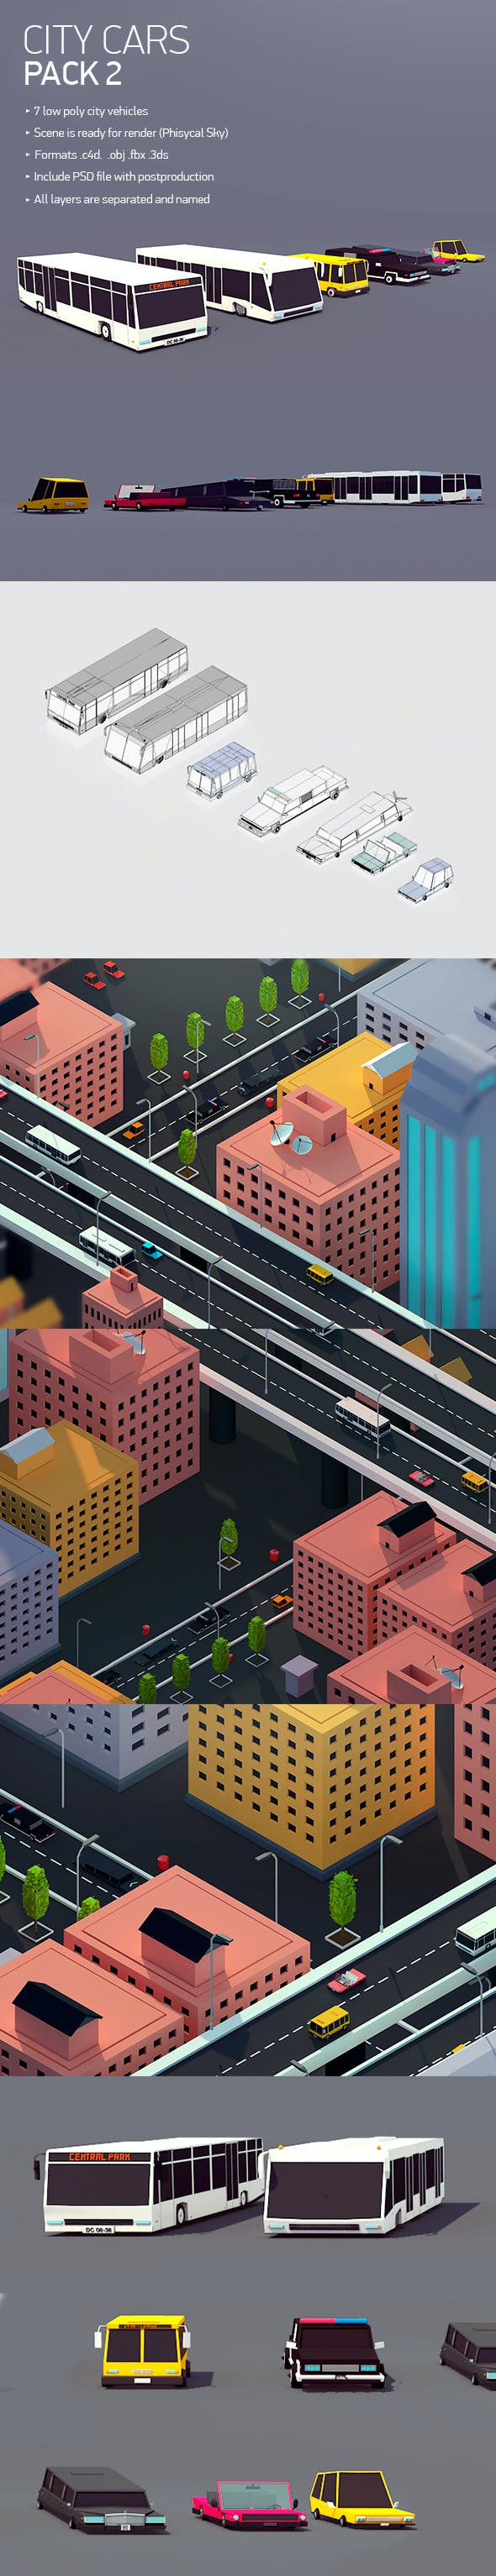 Low poly City Car Pack 2 - 3DOcean Item for Sale